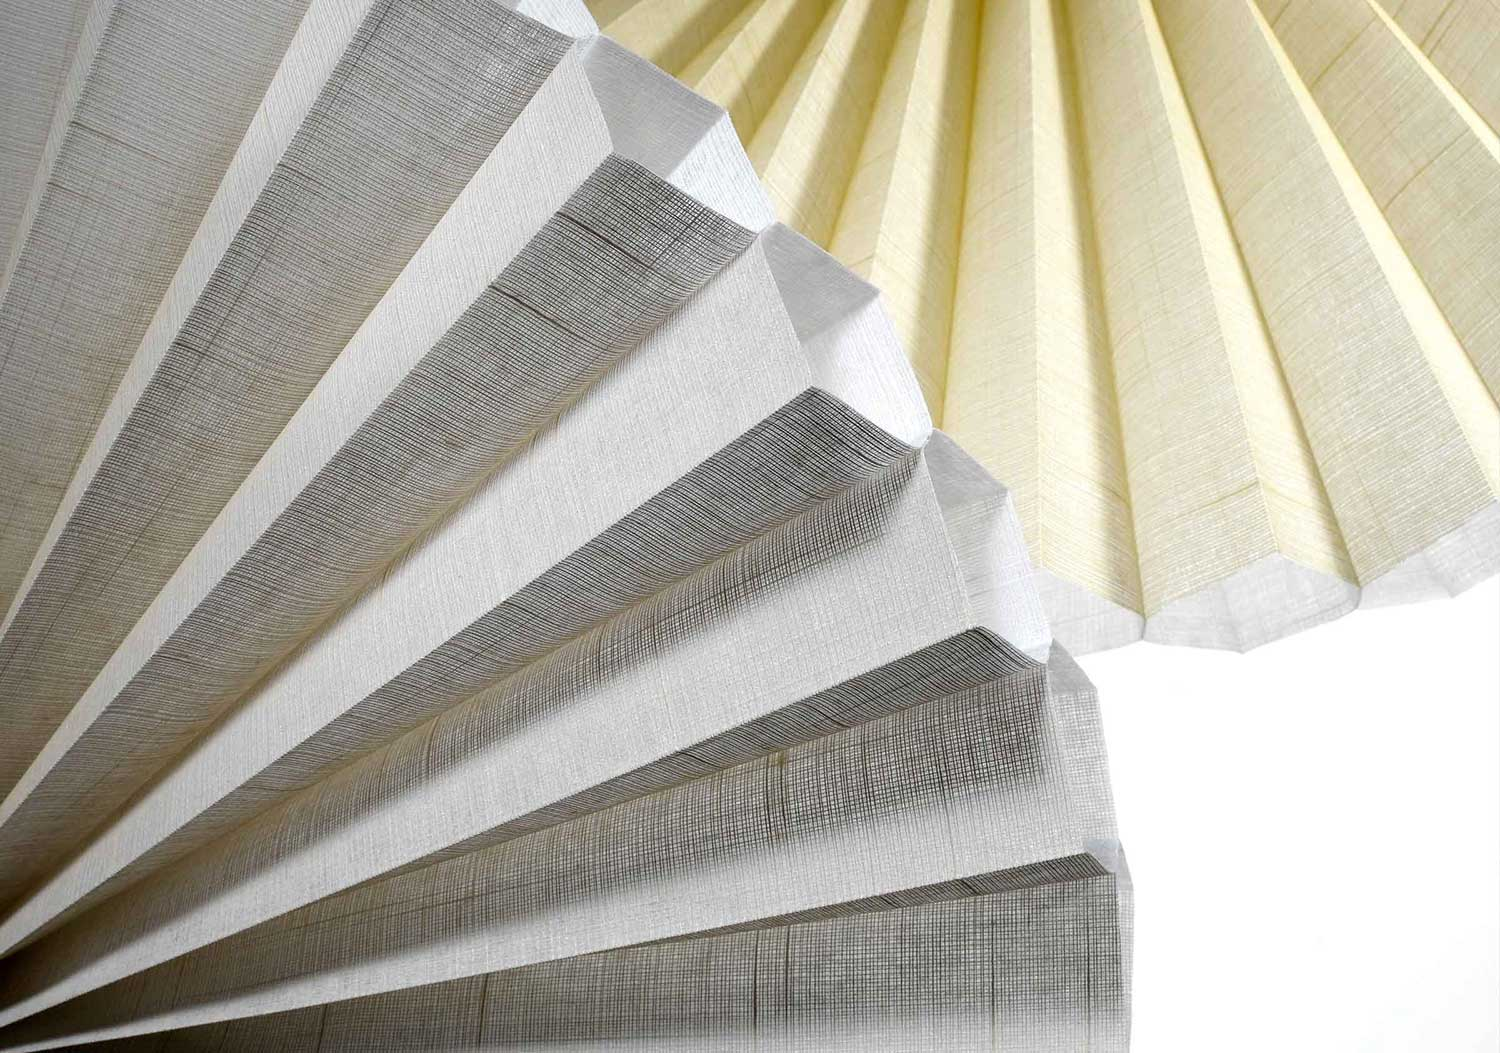 GORGEOUS FABRIC OPTIONS - Duette® Honeycomb Shades are available in numerous colors, patterns and textures to match any decor. We travel the world to find luxurious fabrics to create window treatments that enhance your interiors, while insulating and providing light diffusion and privacy.